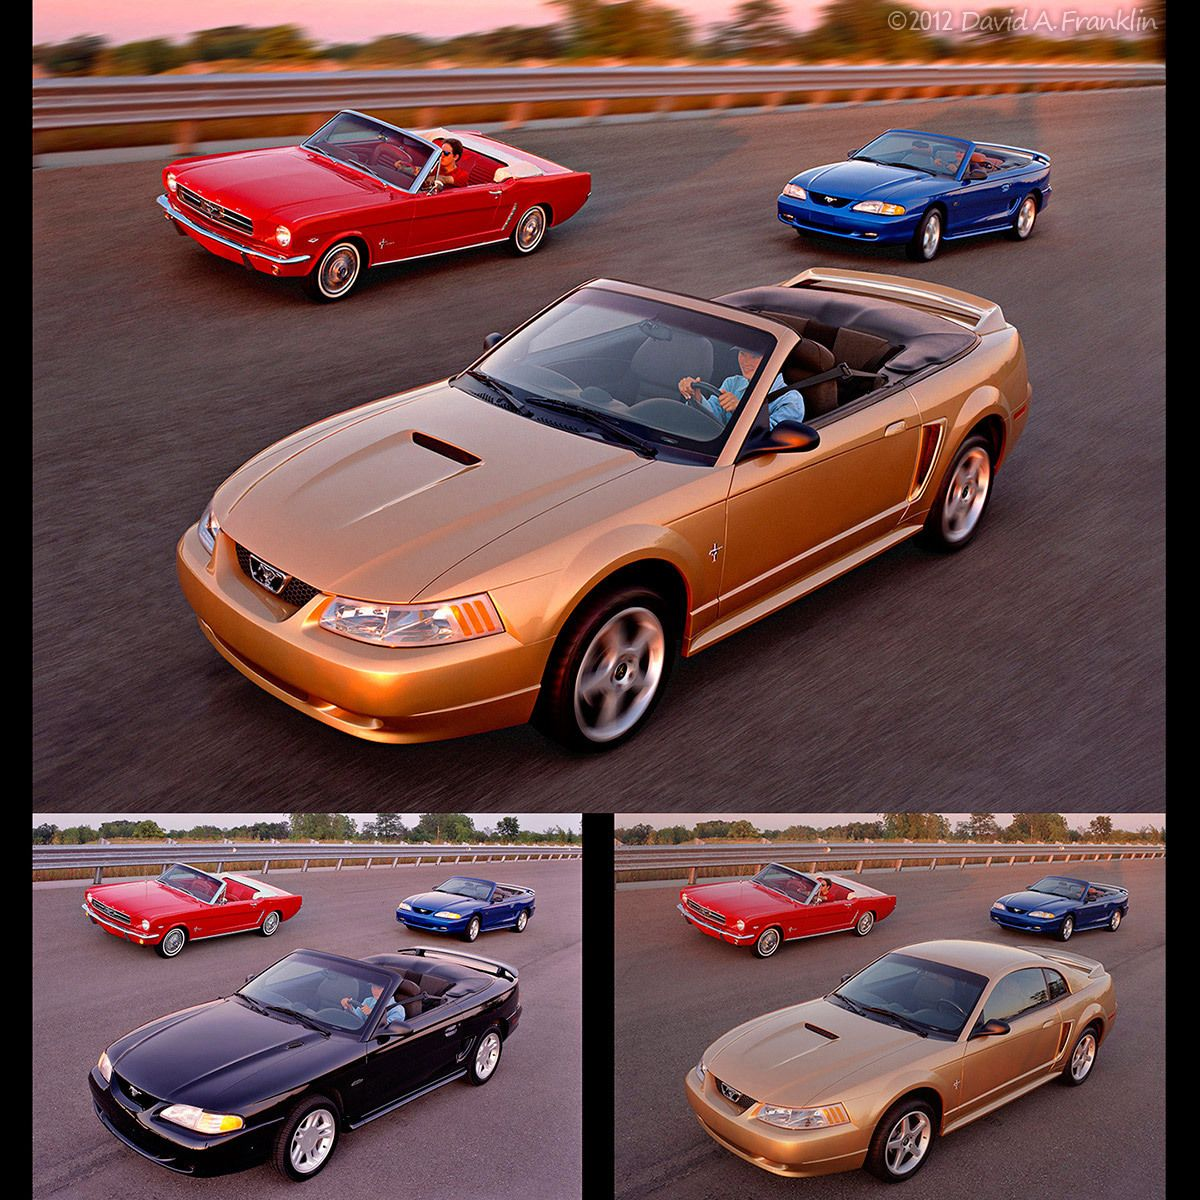 Retouching_3generationsOfMustangs_HardtopChangesToConvertible_CreatedAction_OnTrack